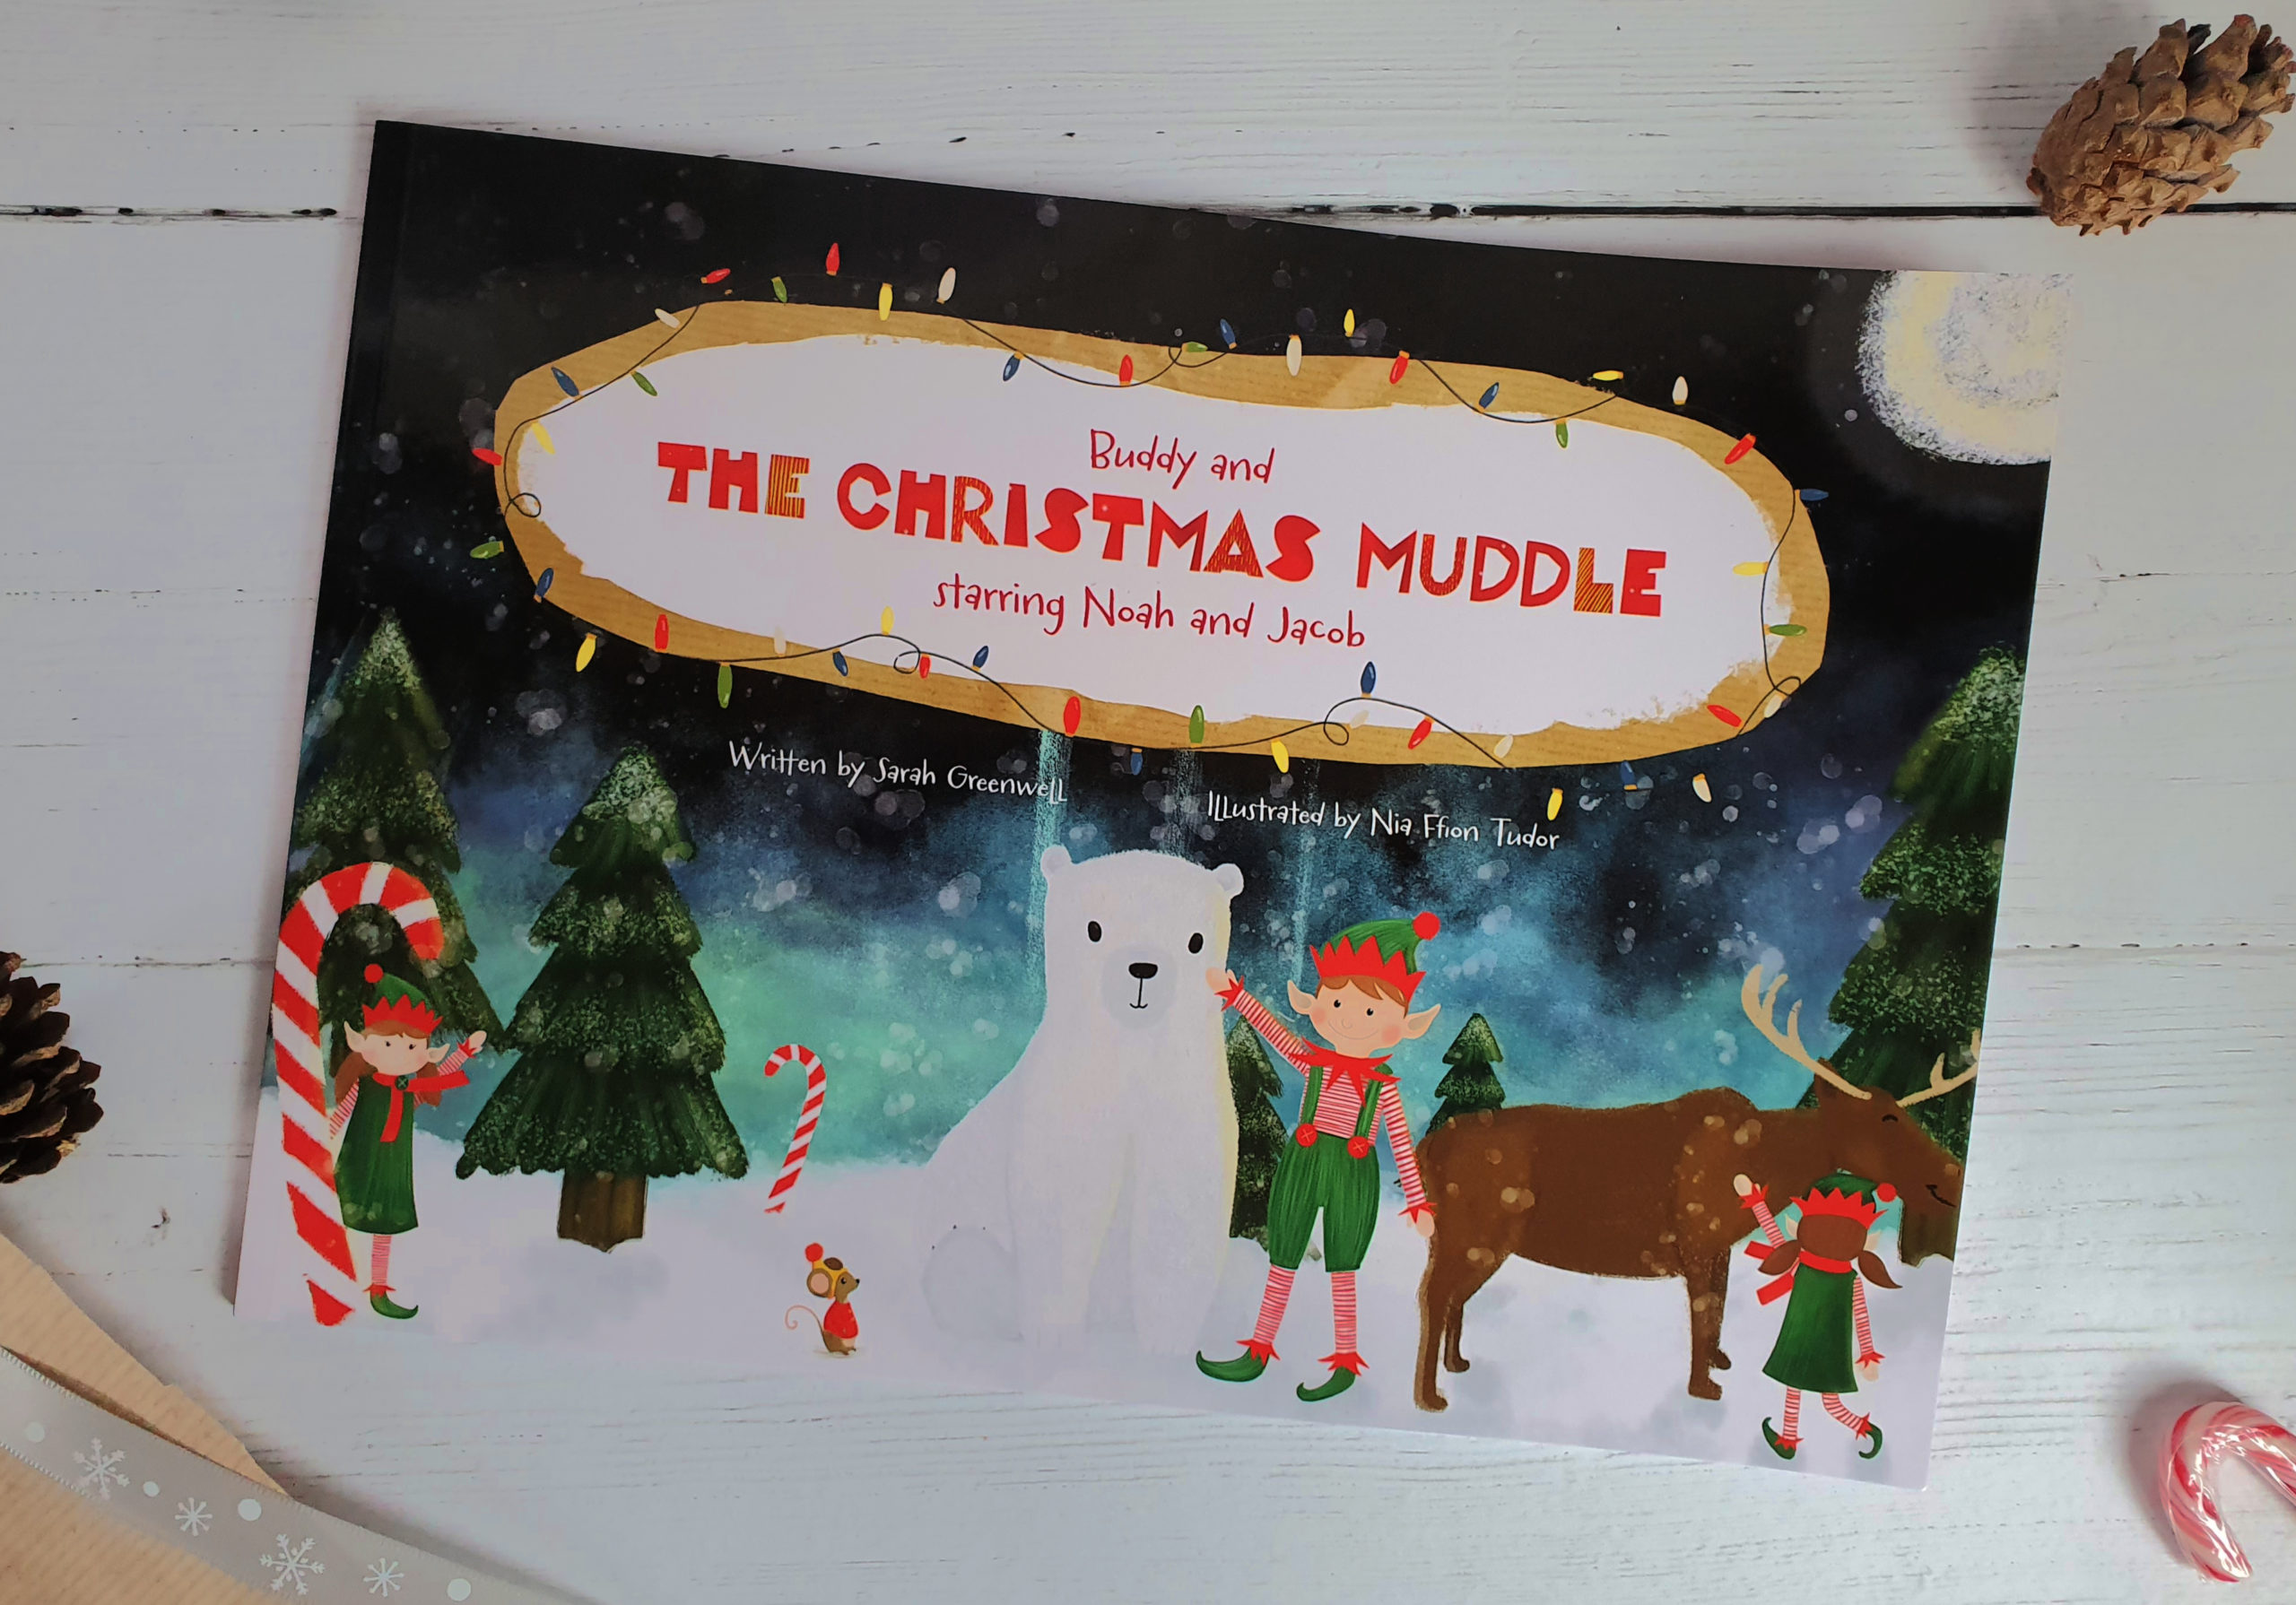 The Christmas Muddle